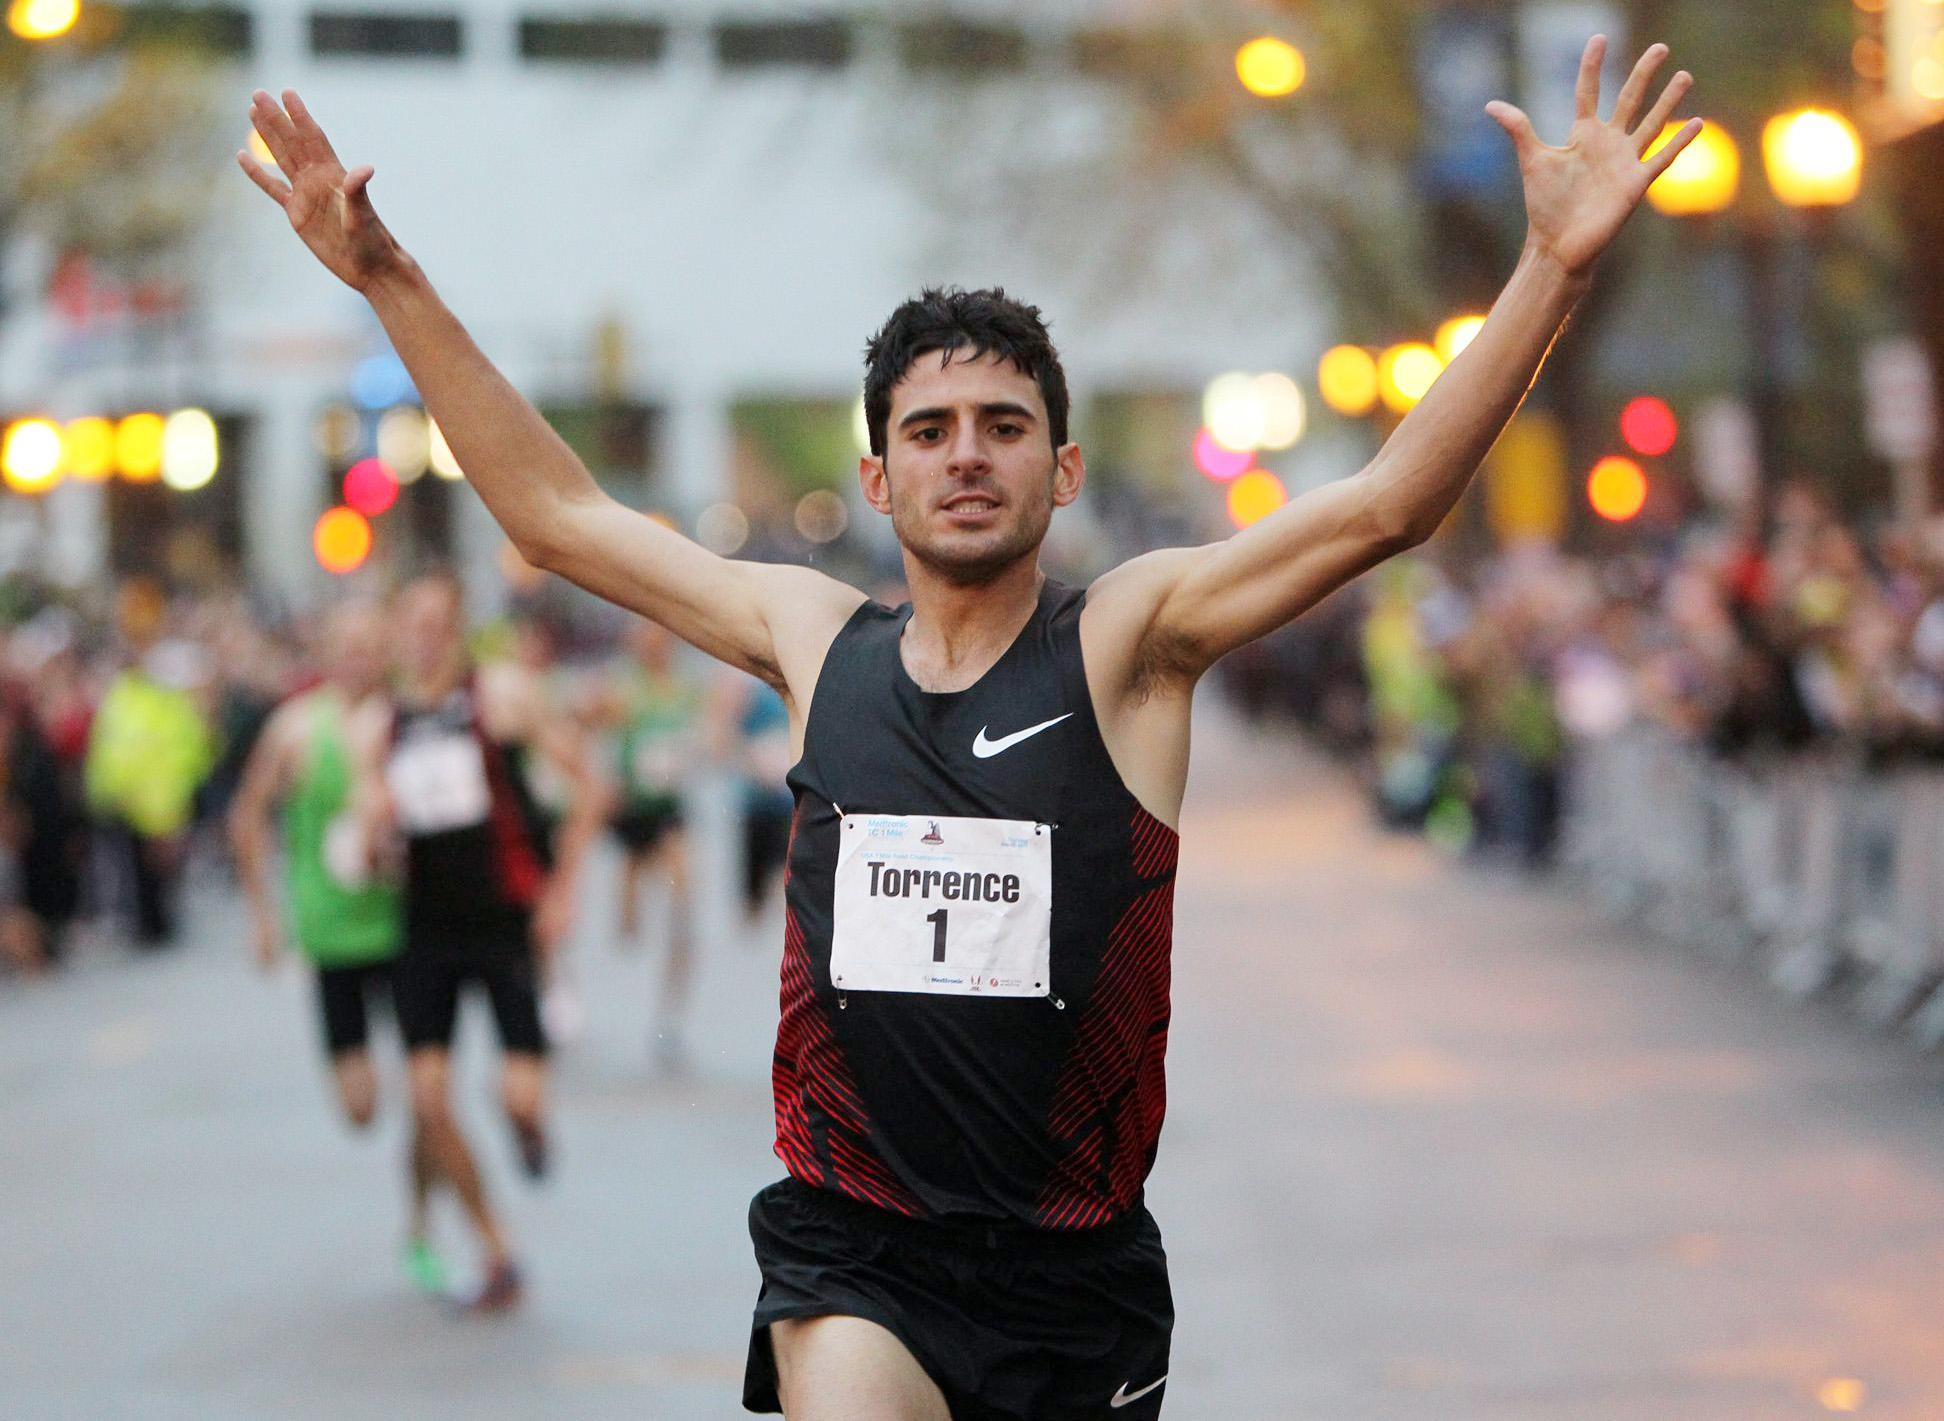 Olympic athlete David Torrence has been found dead in a swimming pool